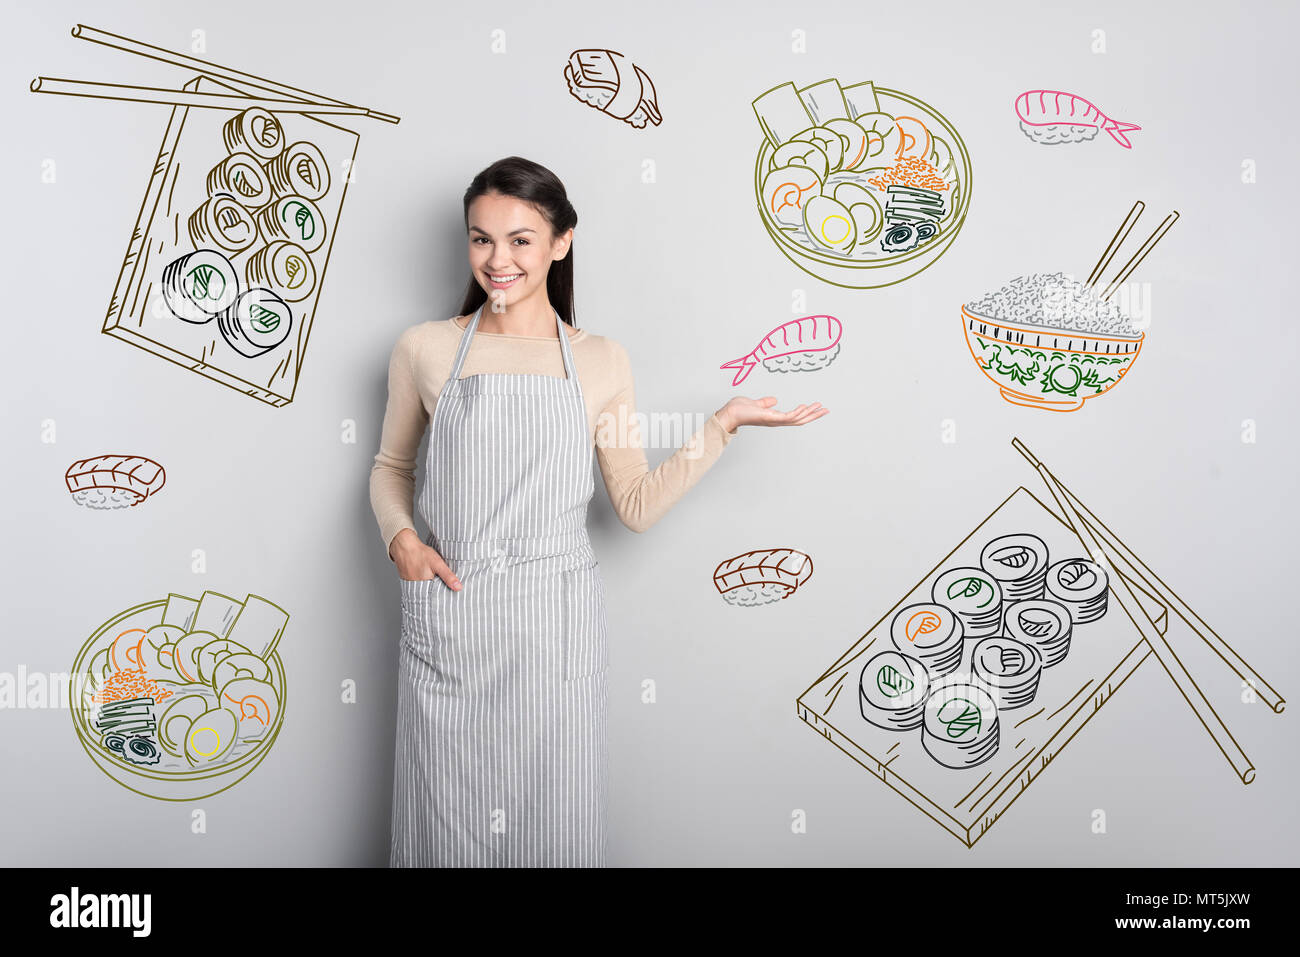 Cheerful waitress smiling and showing Chinese food - Stock Image